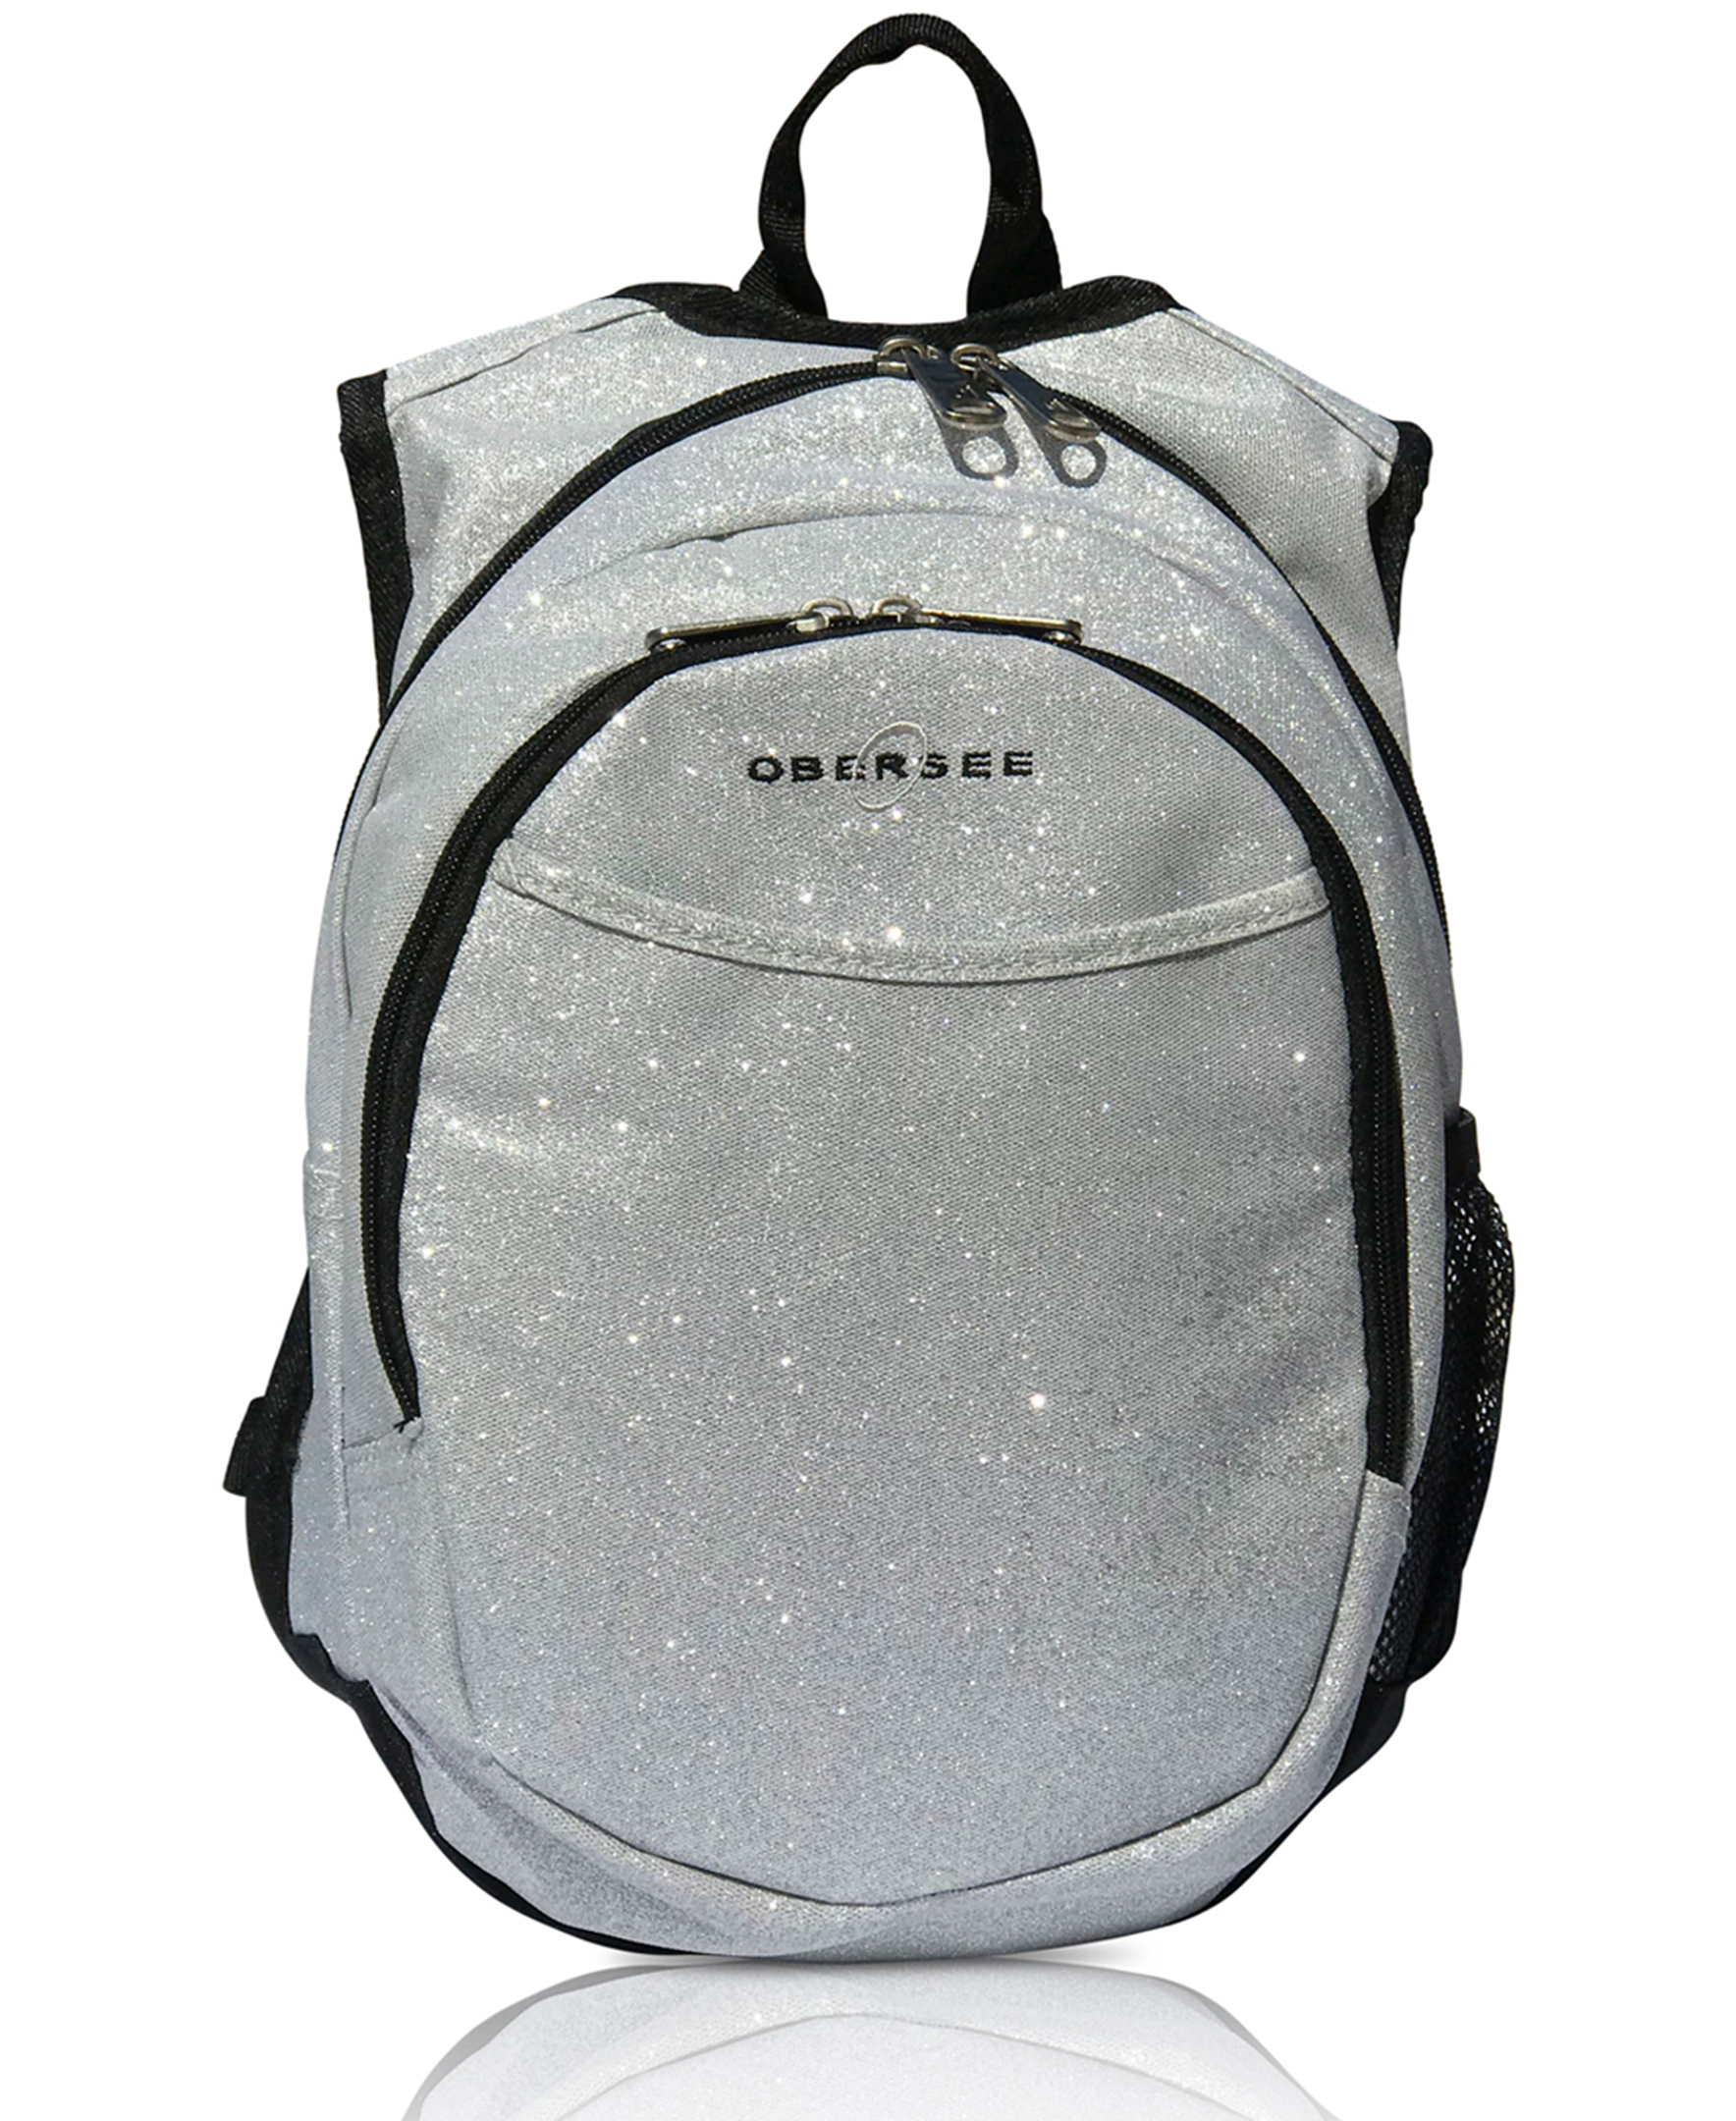 Obersee Mini Preschool Backpack for Girls with integrated Insulated Snack Cooler | Sparkle Silver Design